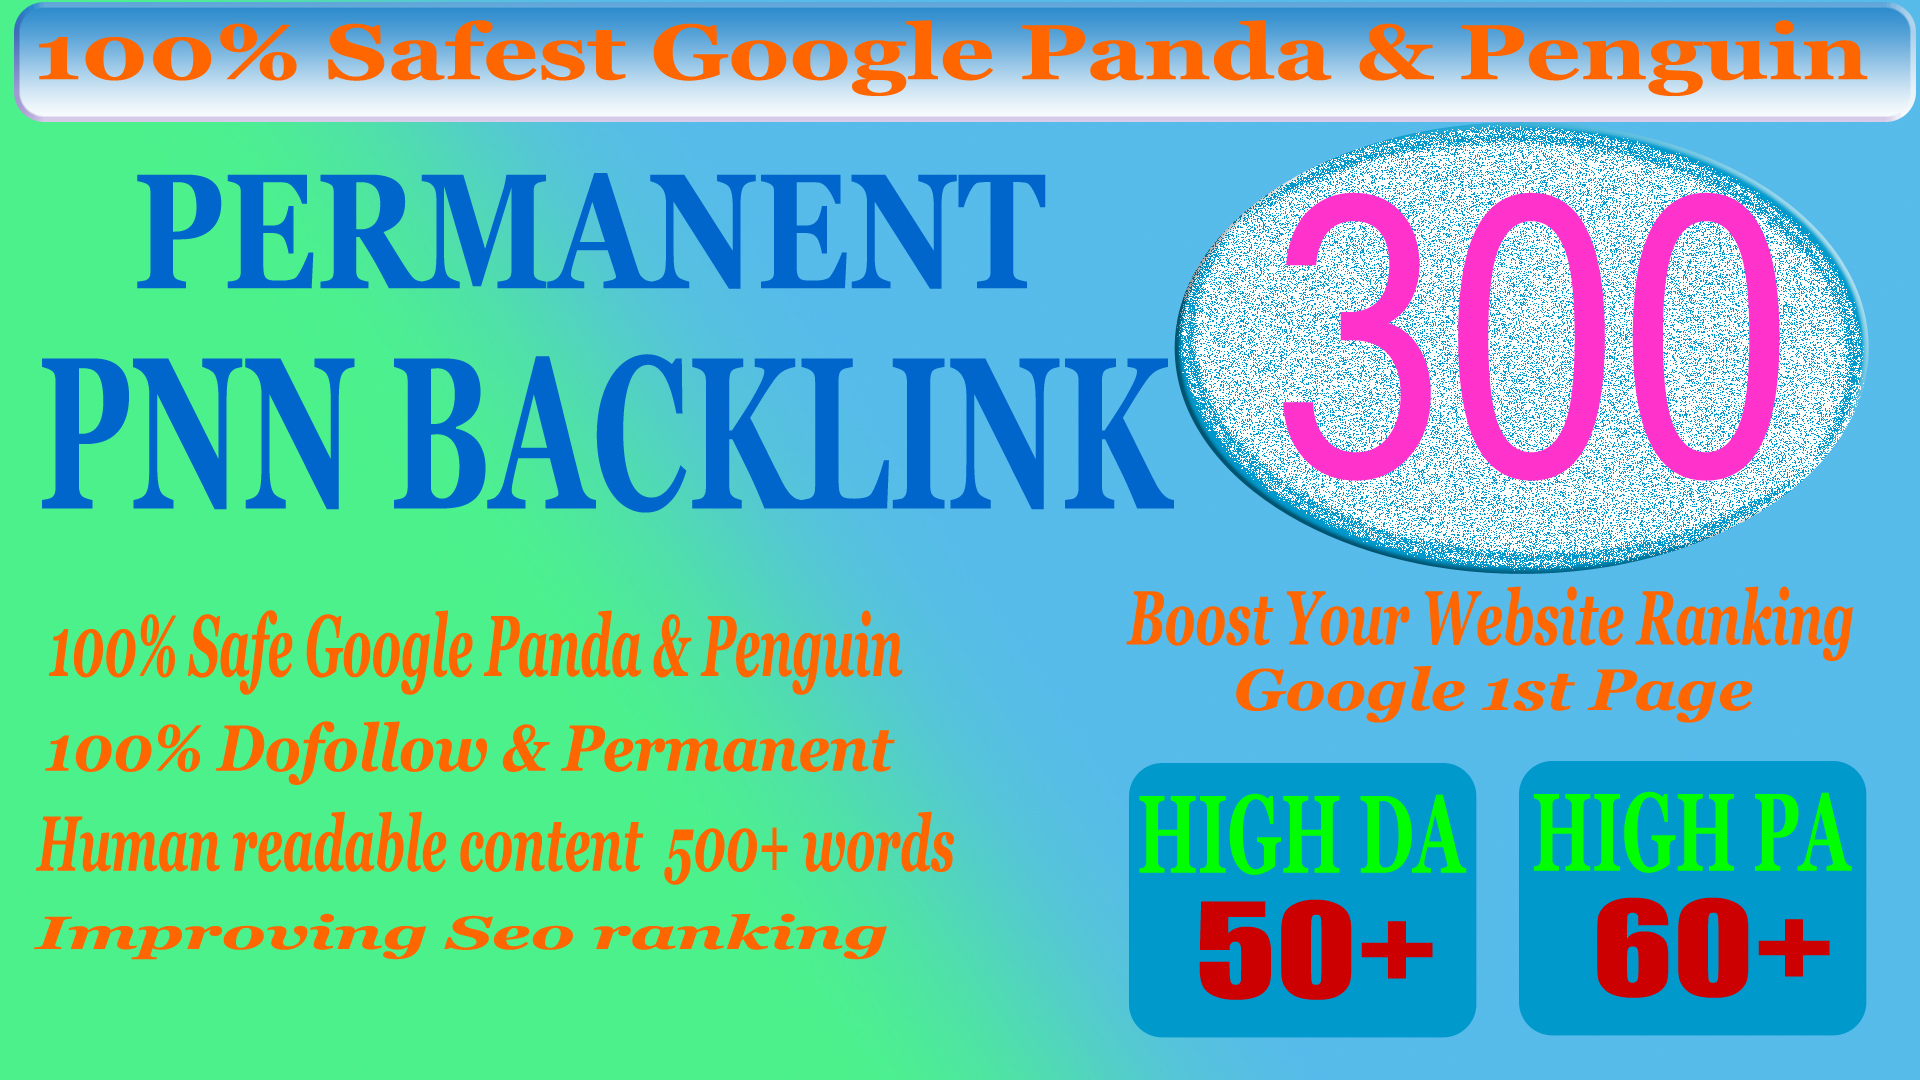 Get Extreme 300+PBN Backlink in your website hompage with HIGH DA/PA/TF/CF with unique website